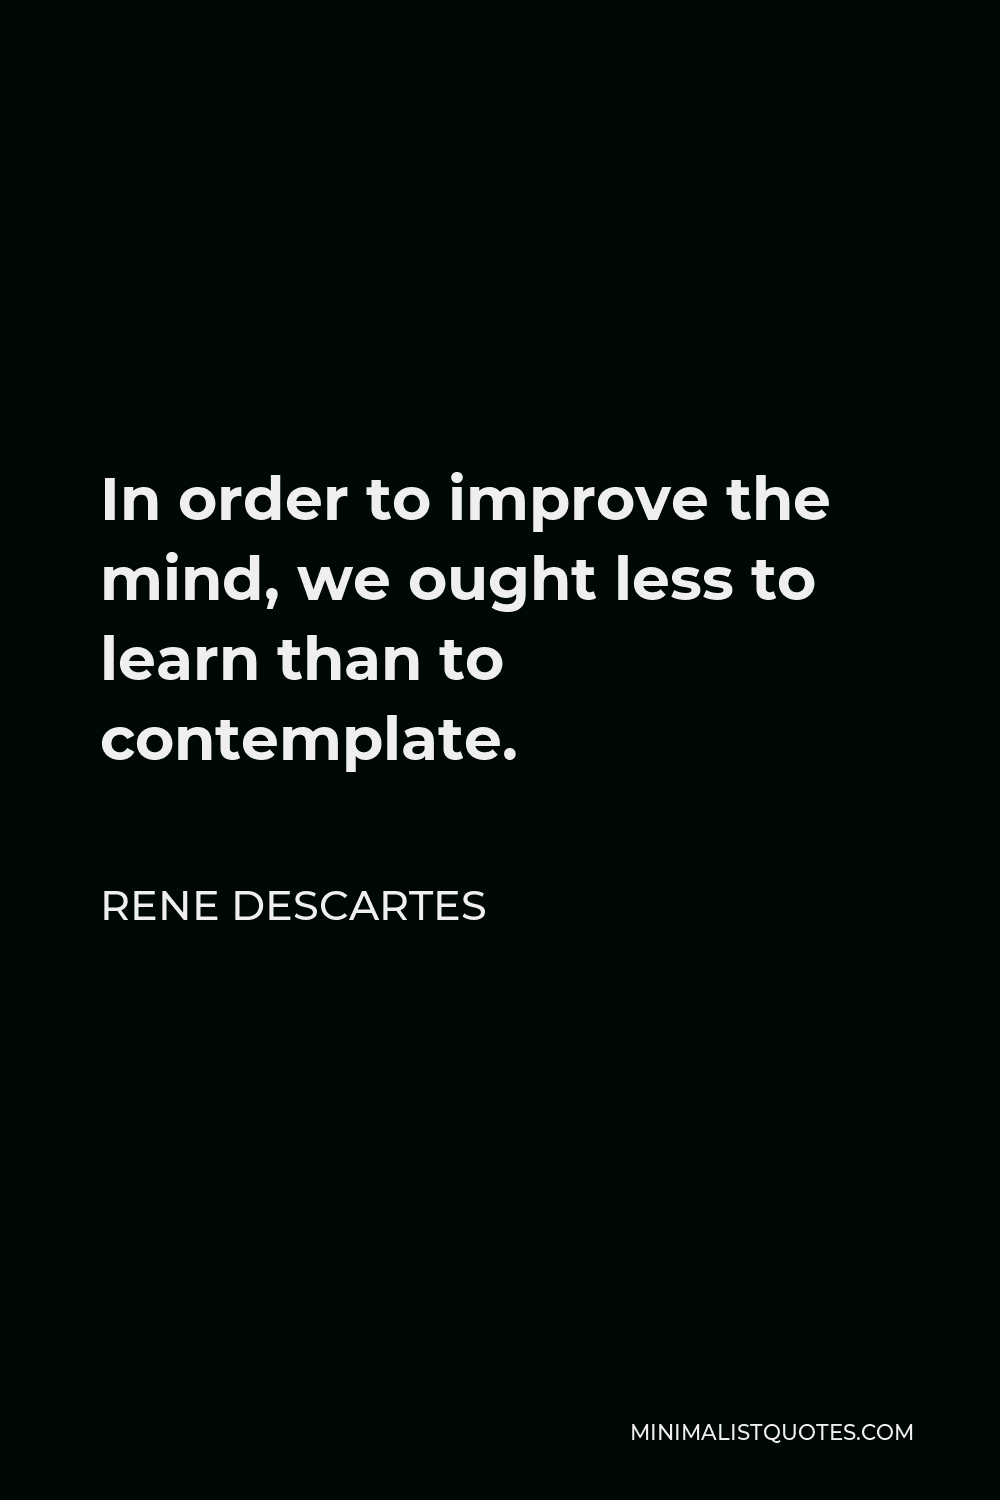 Rene Descartes Quote - In order to improve the mind, we ought less to learn than to contemplate.